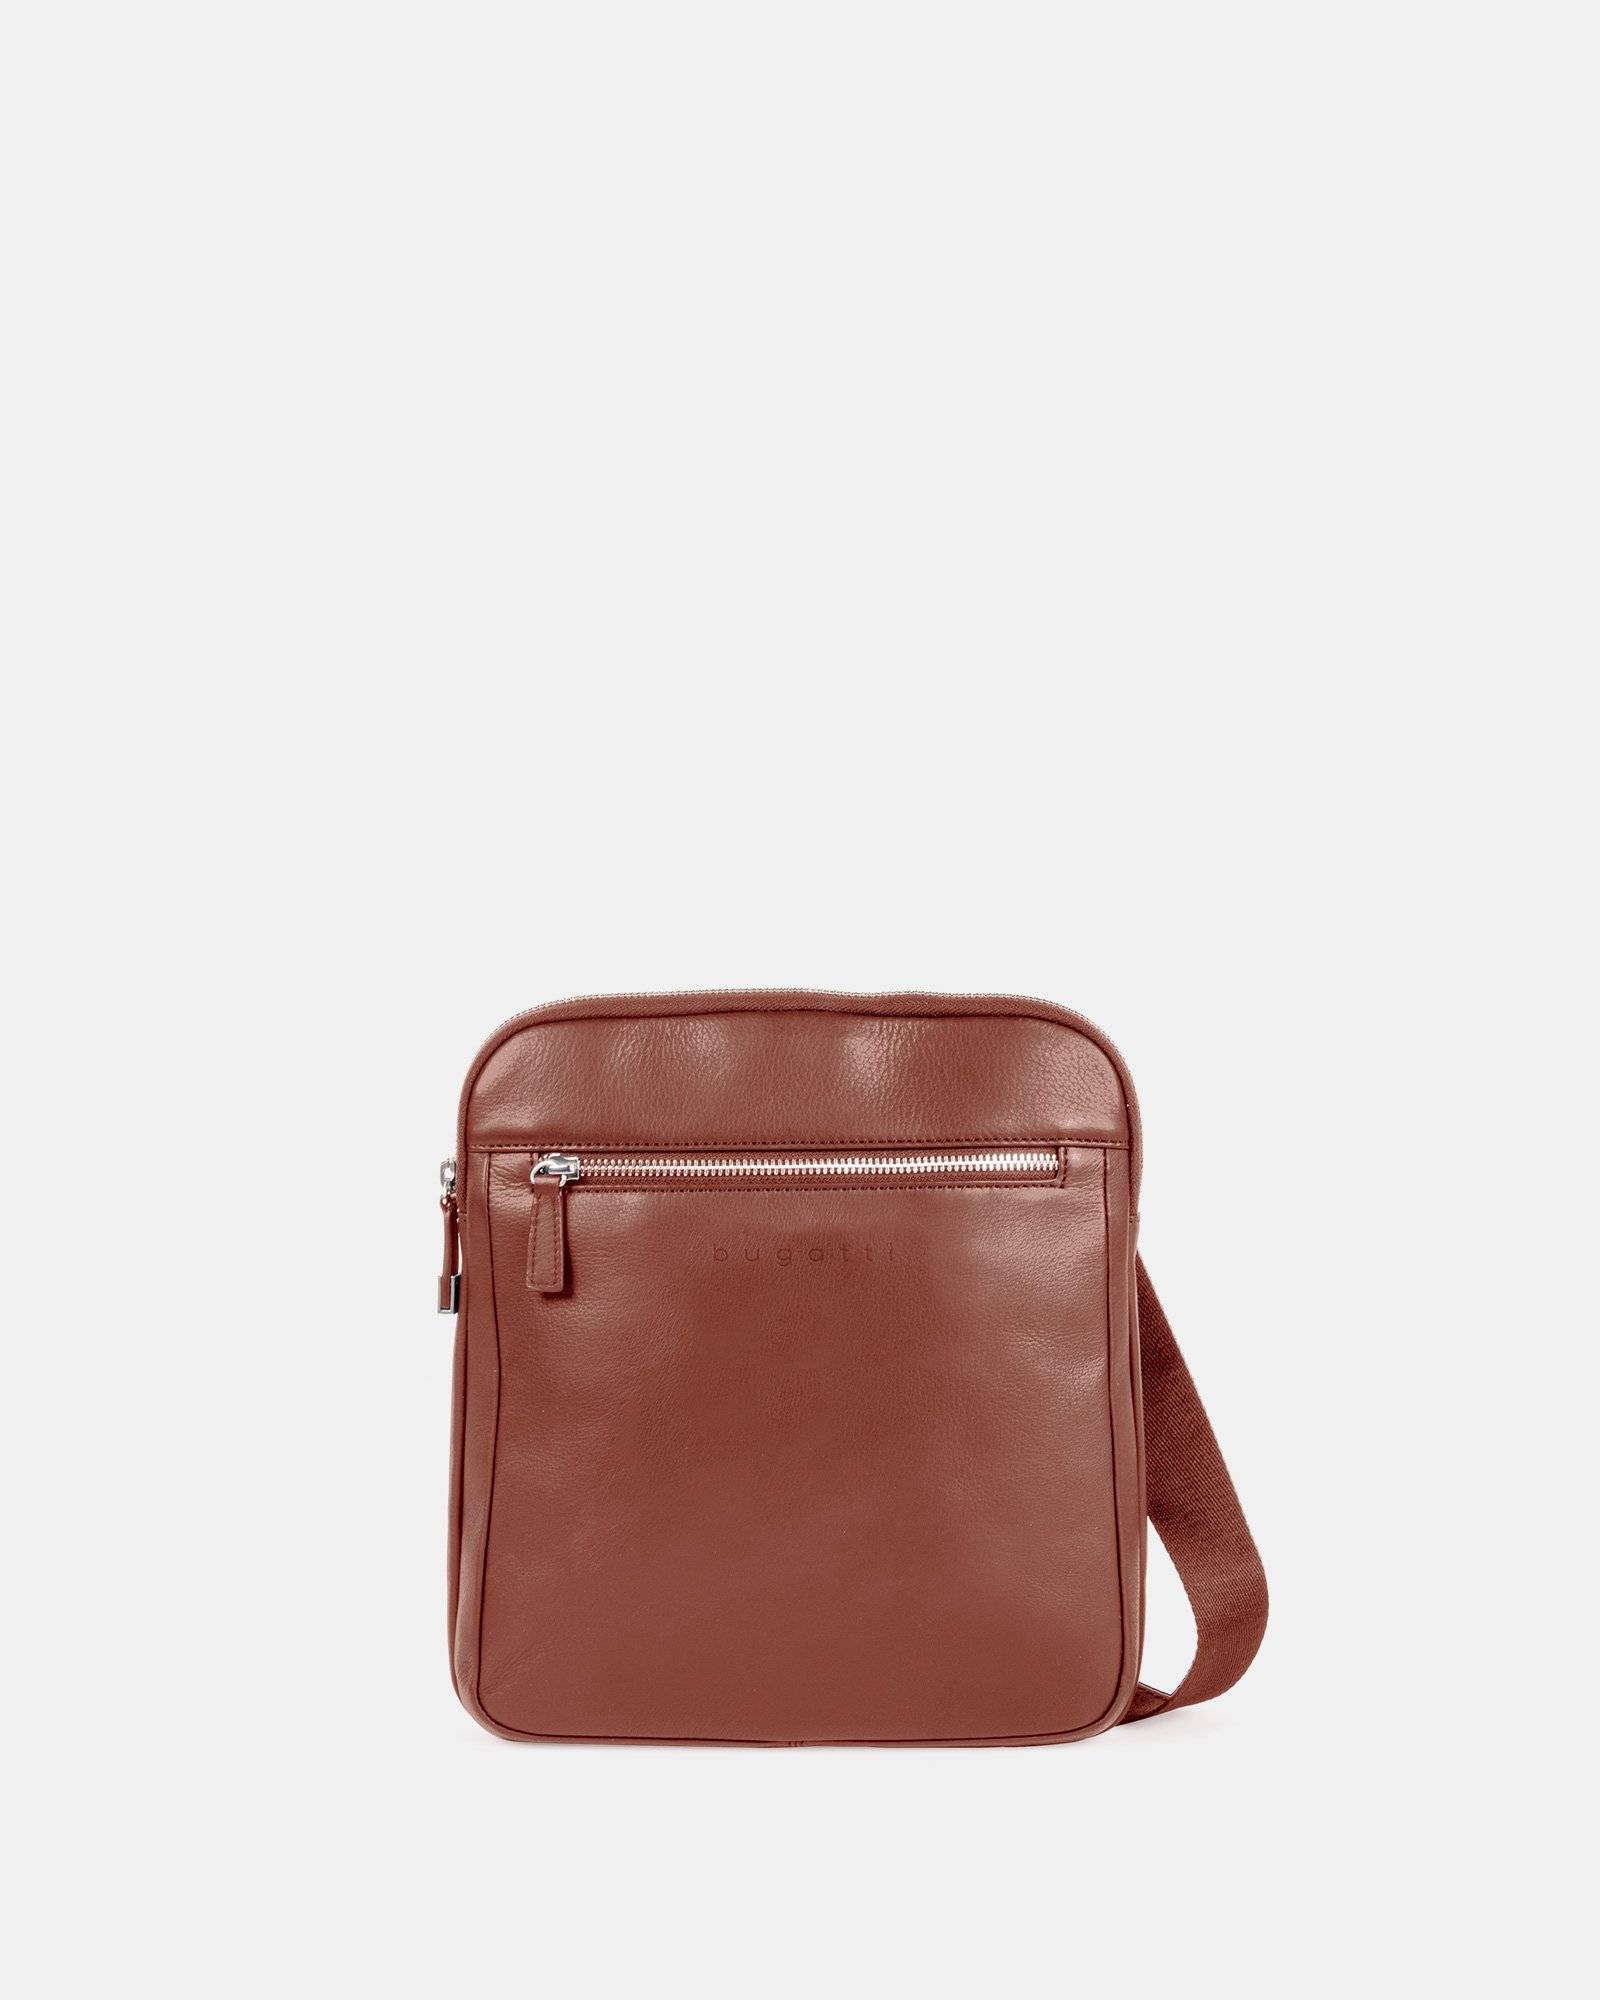 SARTORIA - CROSSBODY for tablet with Adjustable and comfortable strap - Cognac - Bugatti - Zoom